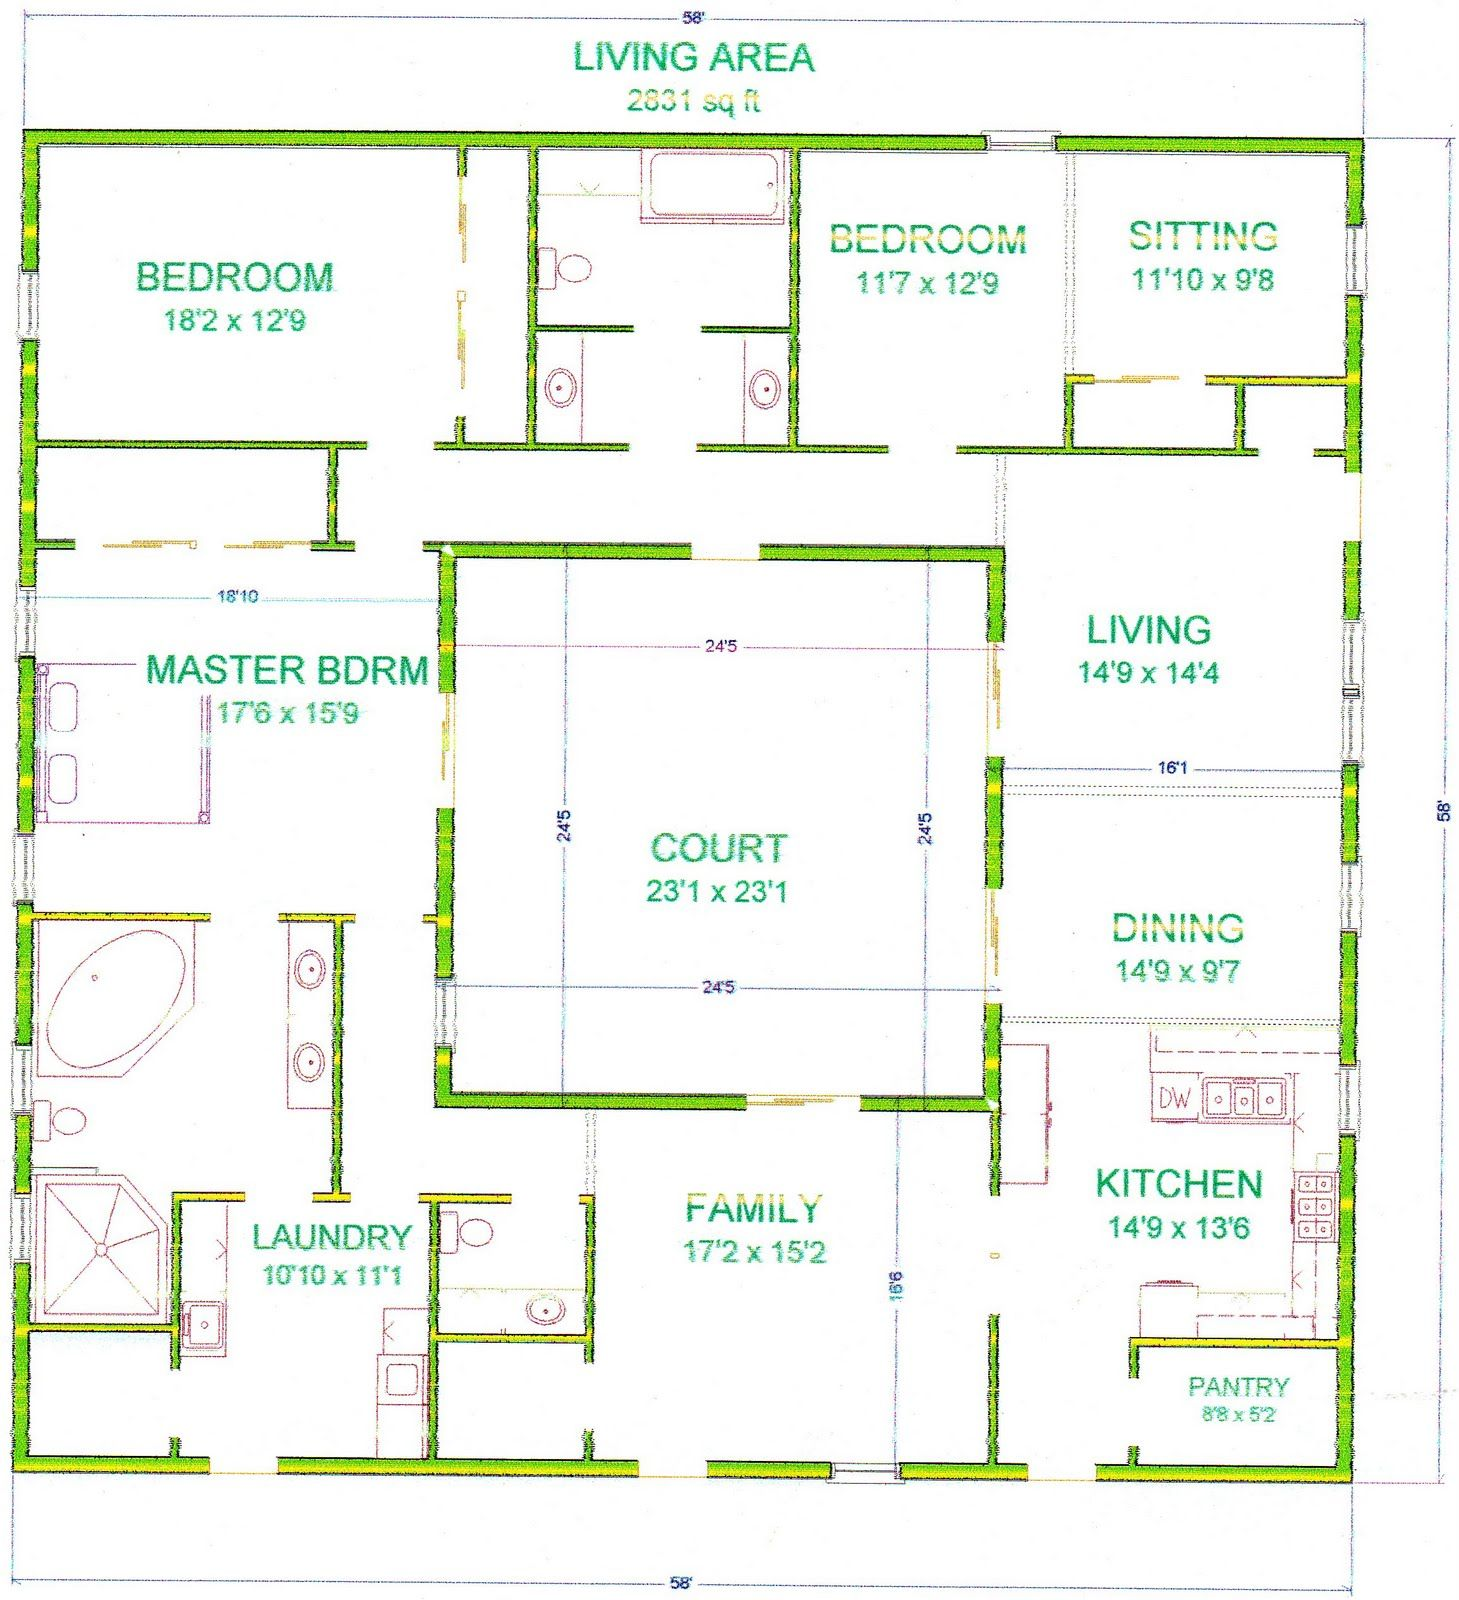 Center courtyard house plans with 2831 square feet this Old world house plans courtyard